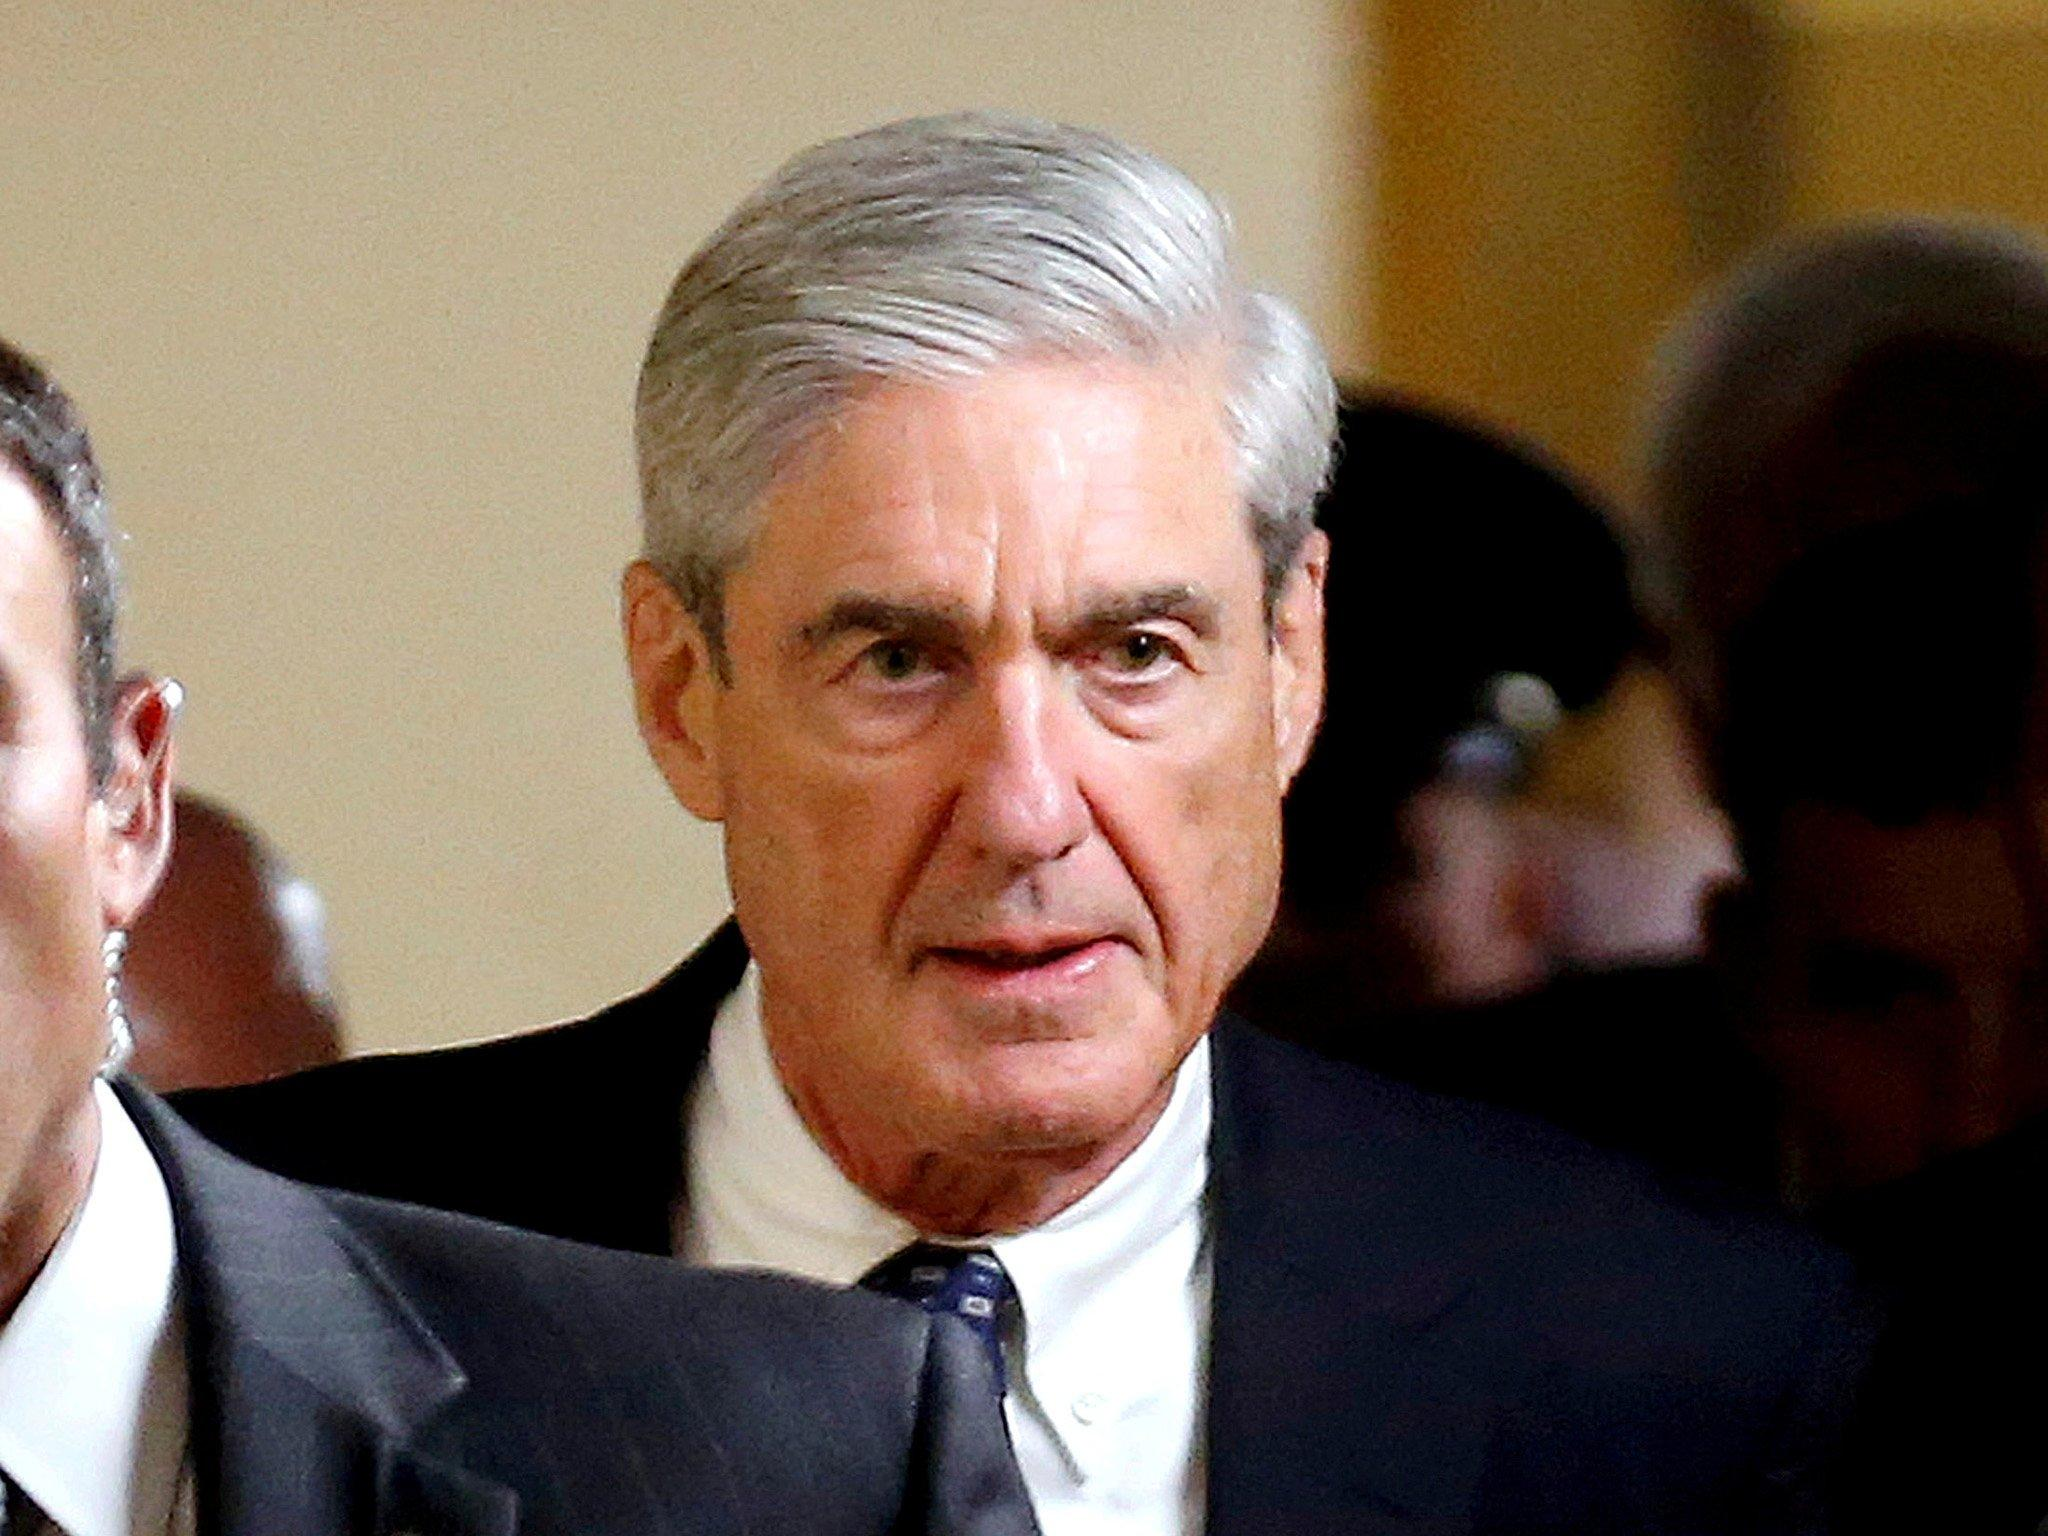 Mueller court documents suggest Trump campaign advisor was tipped off about Wikileaks data dump